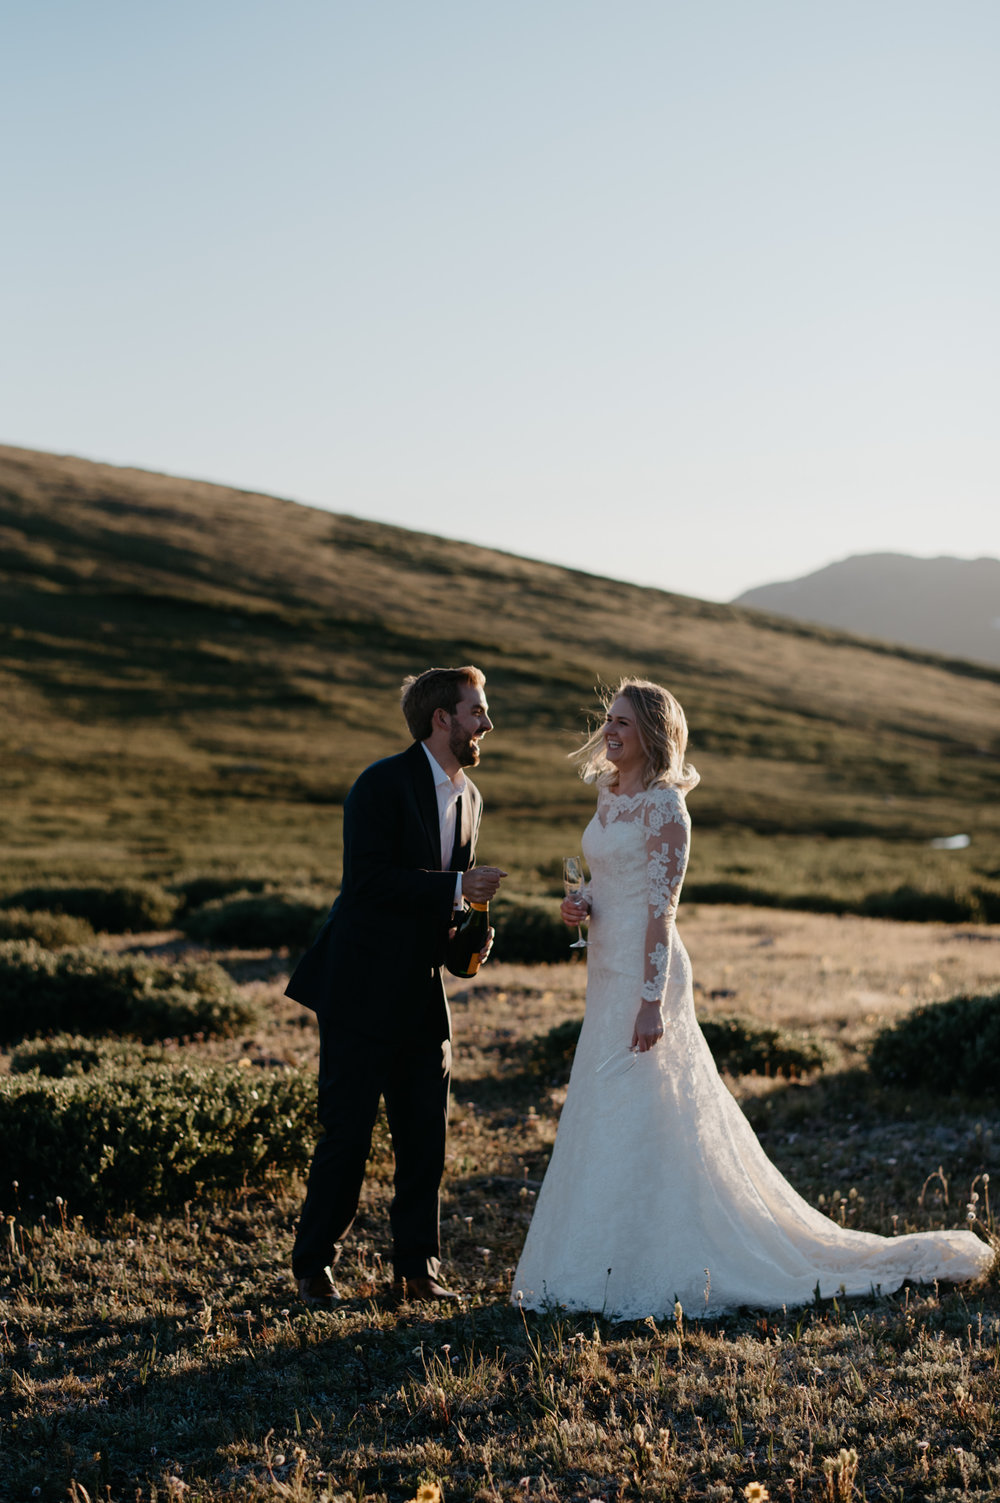 Aspen, Colorado wedding photographer. Colorado elopement and weddings.